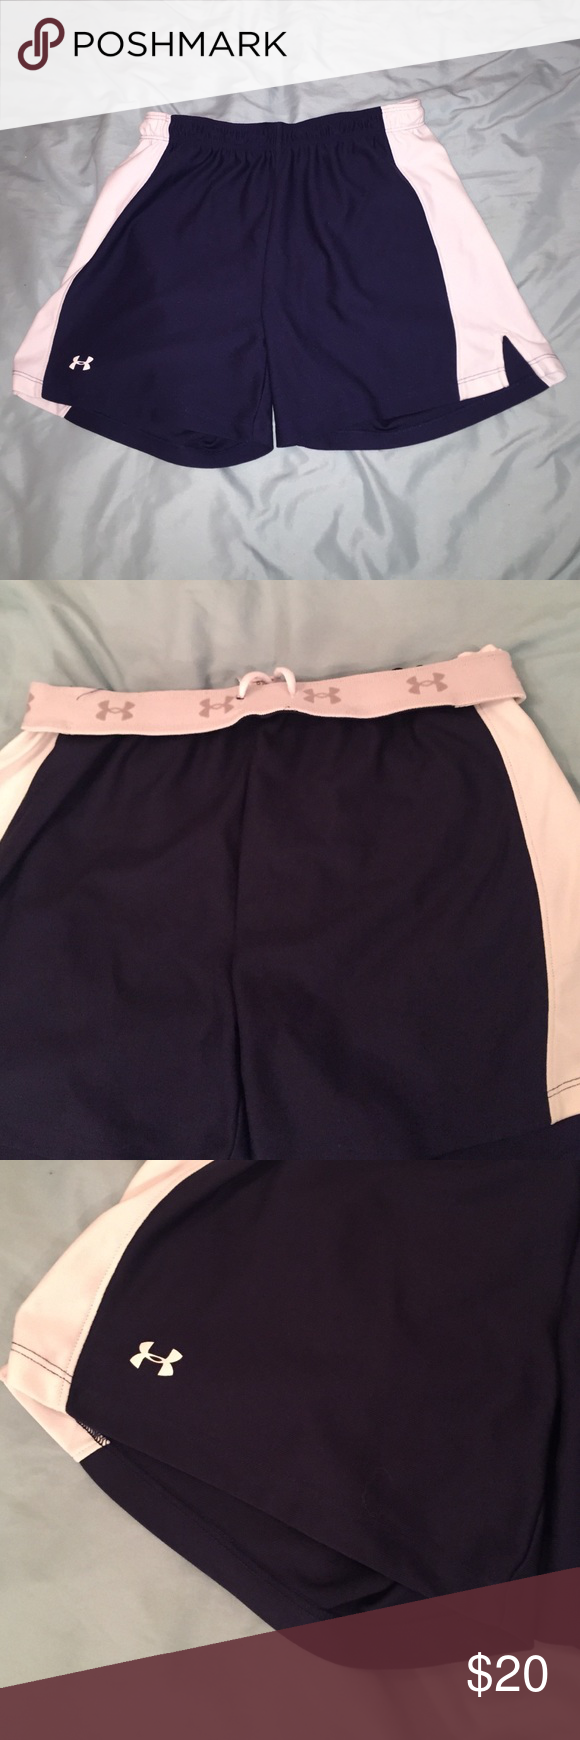 Under armour athletic shorts Navy blue with white stripes down the side. Waist band has the symbol all over it. Drawstring option to make the waist tighter. Tags are off but they were never worn, too small on me. Perfect condition Under Armour Shorts